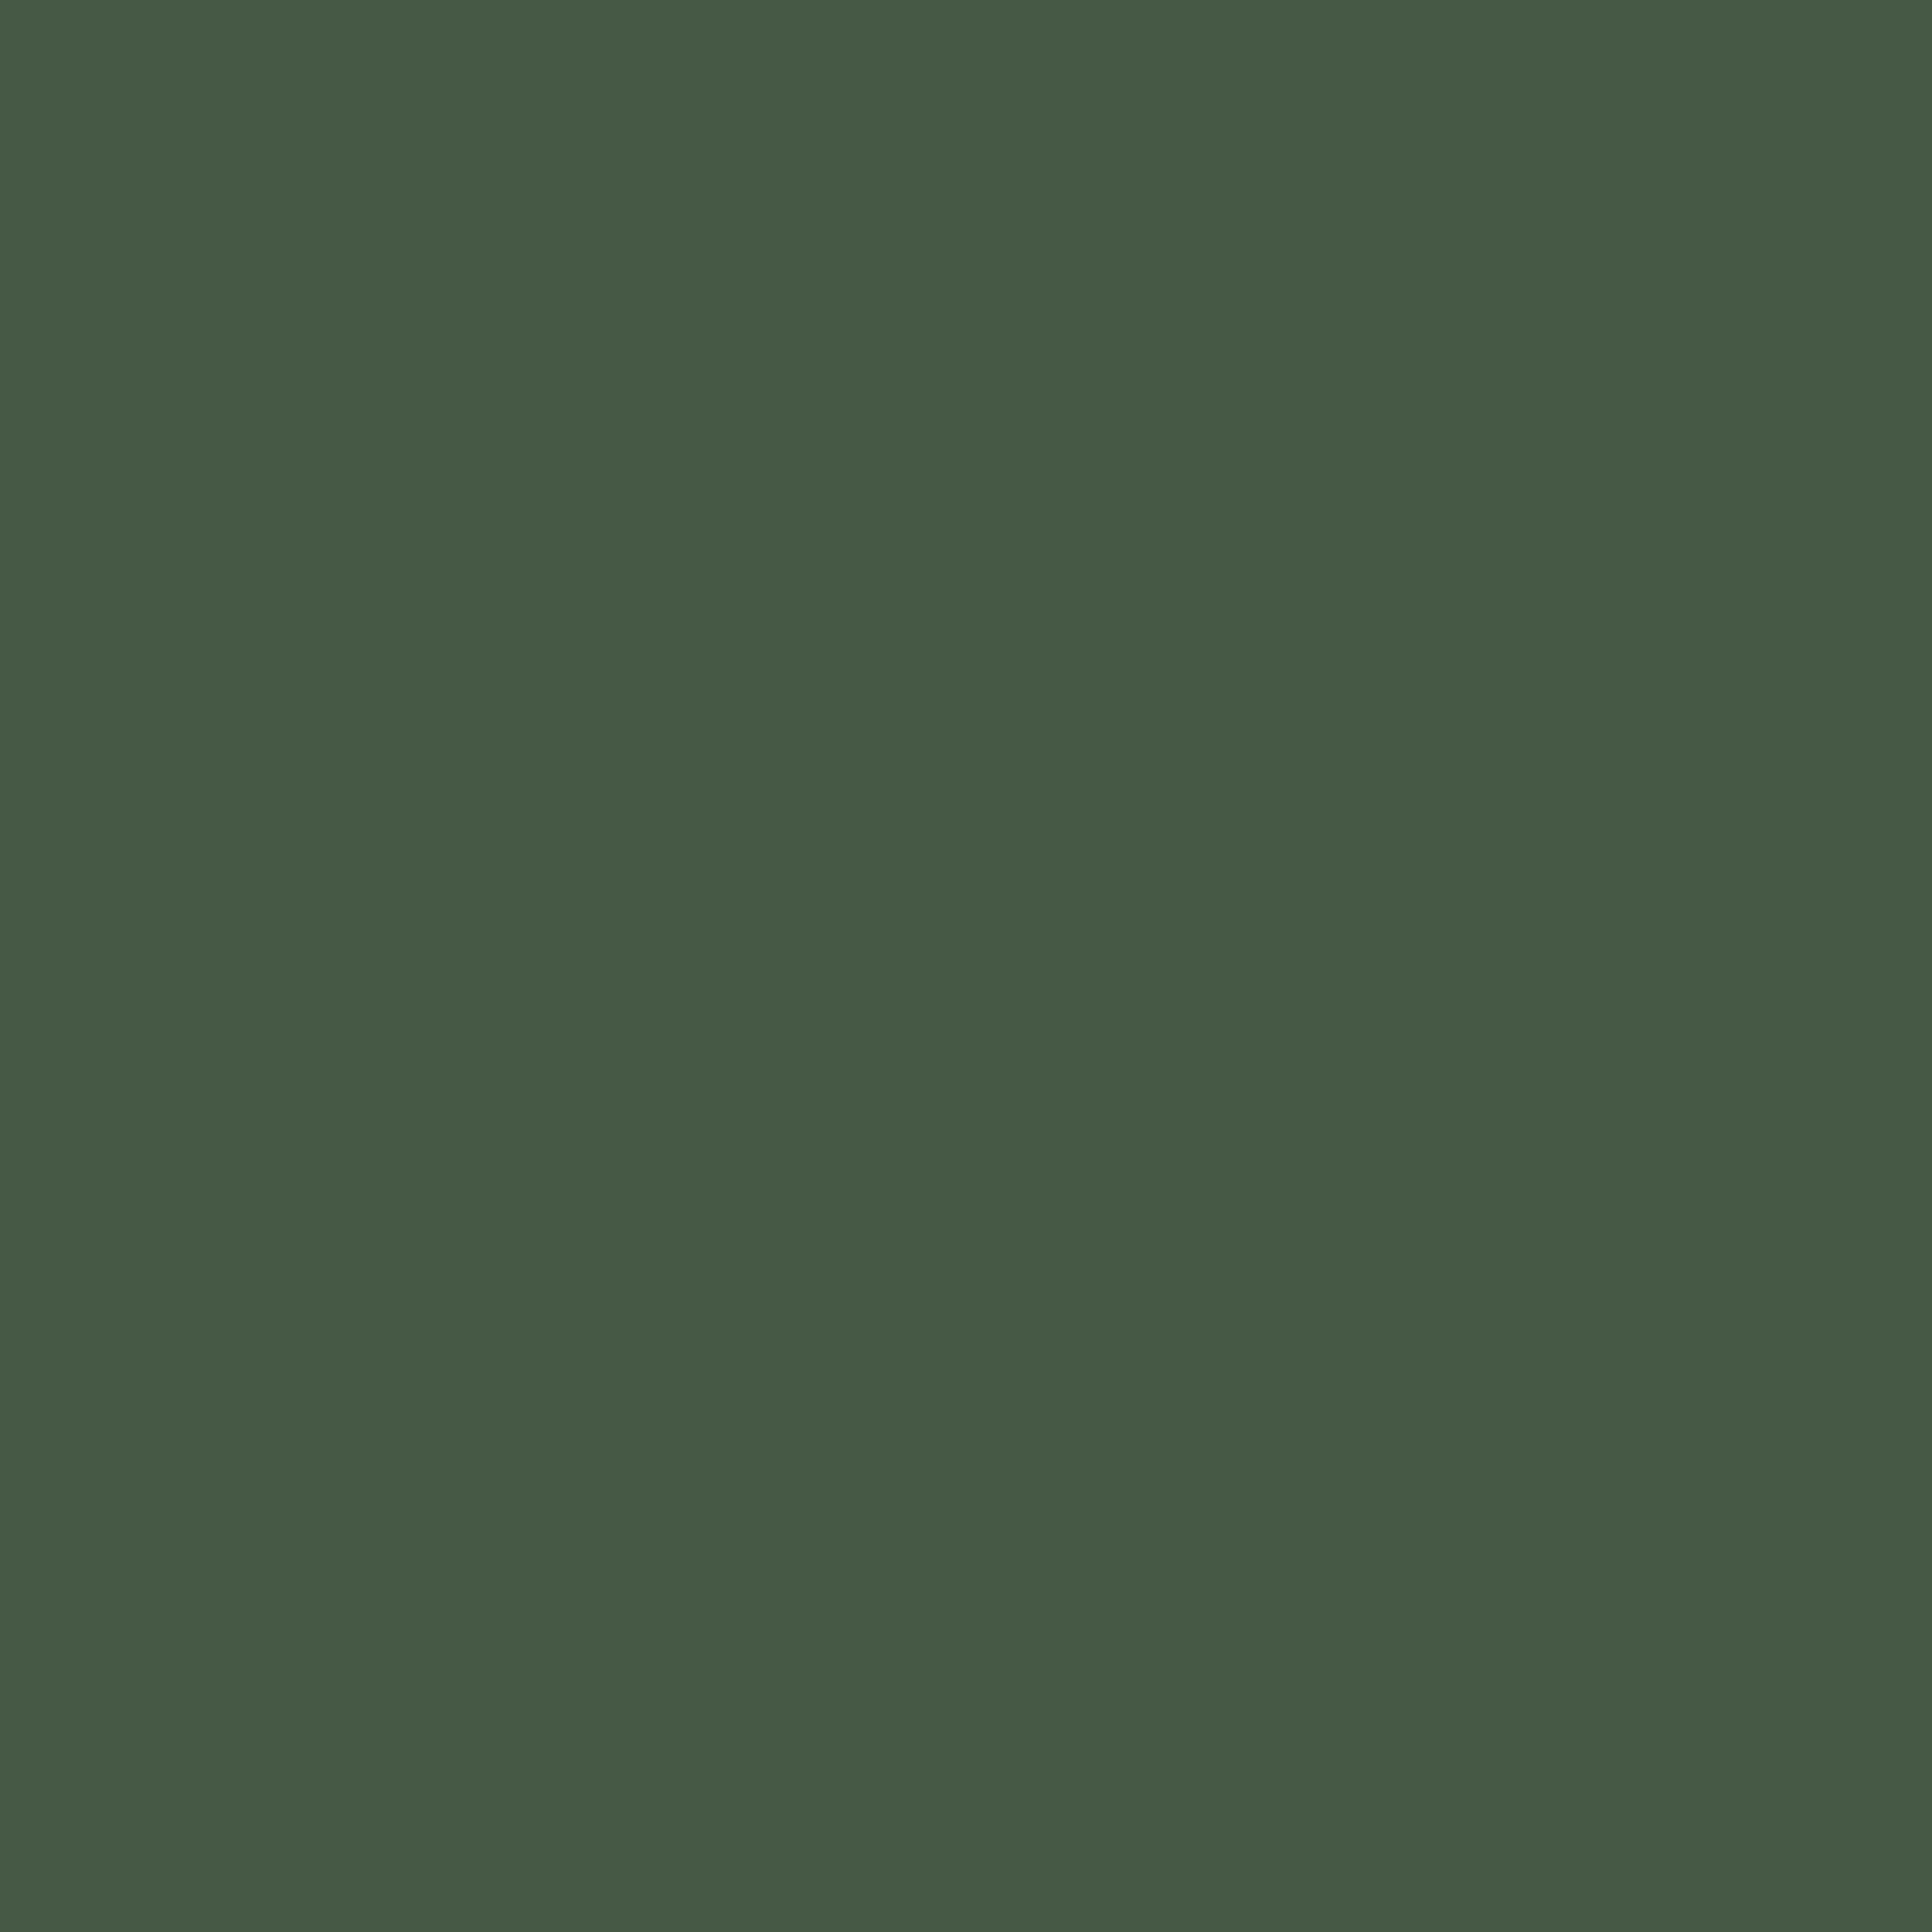 2732x2732 Gray-asparagus Solid Color Background